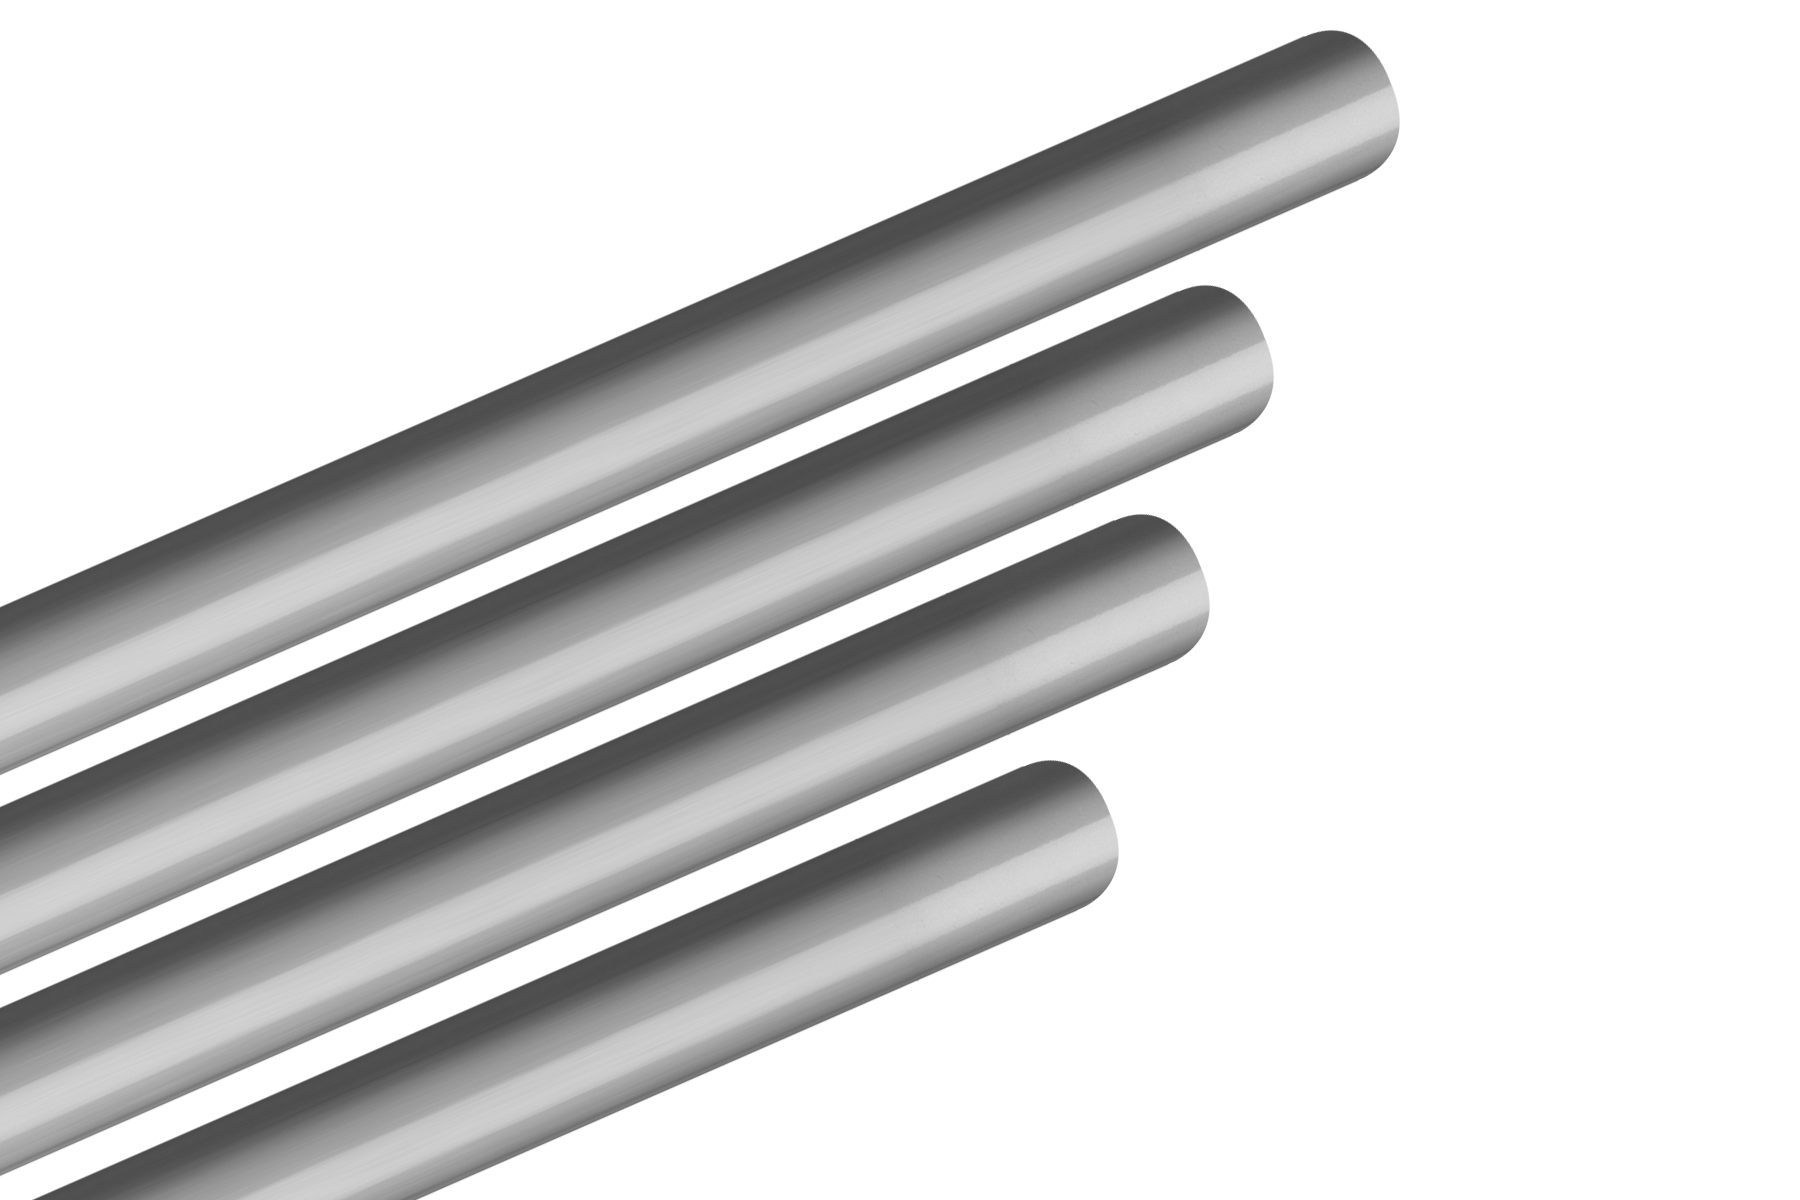 Aluminum Piping comes in a variety of colors. Such as Gray